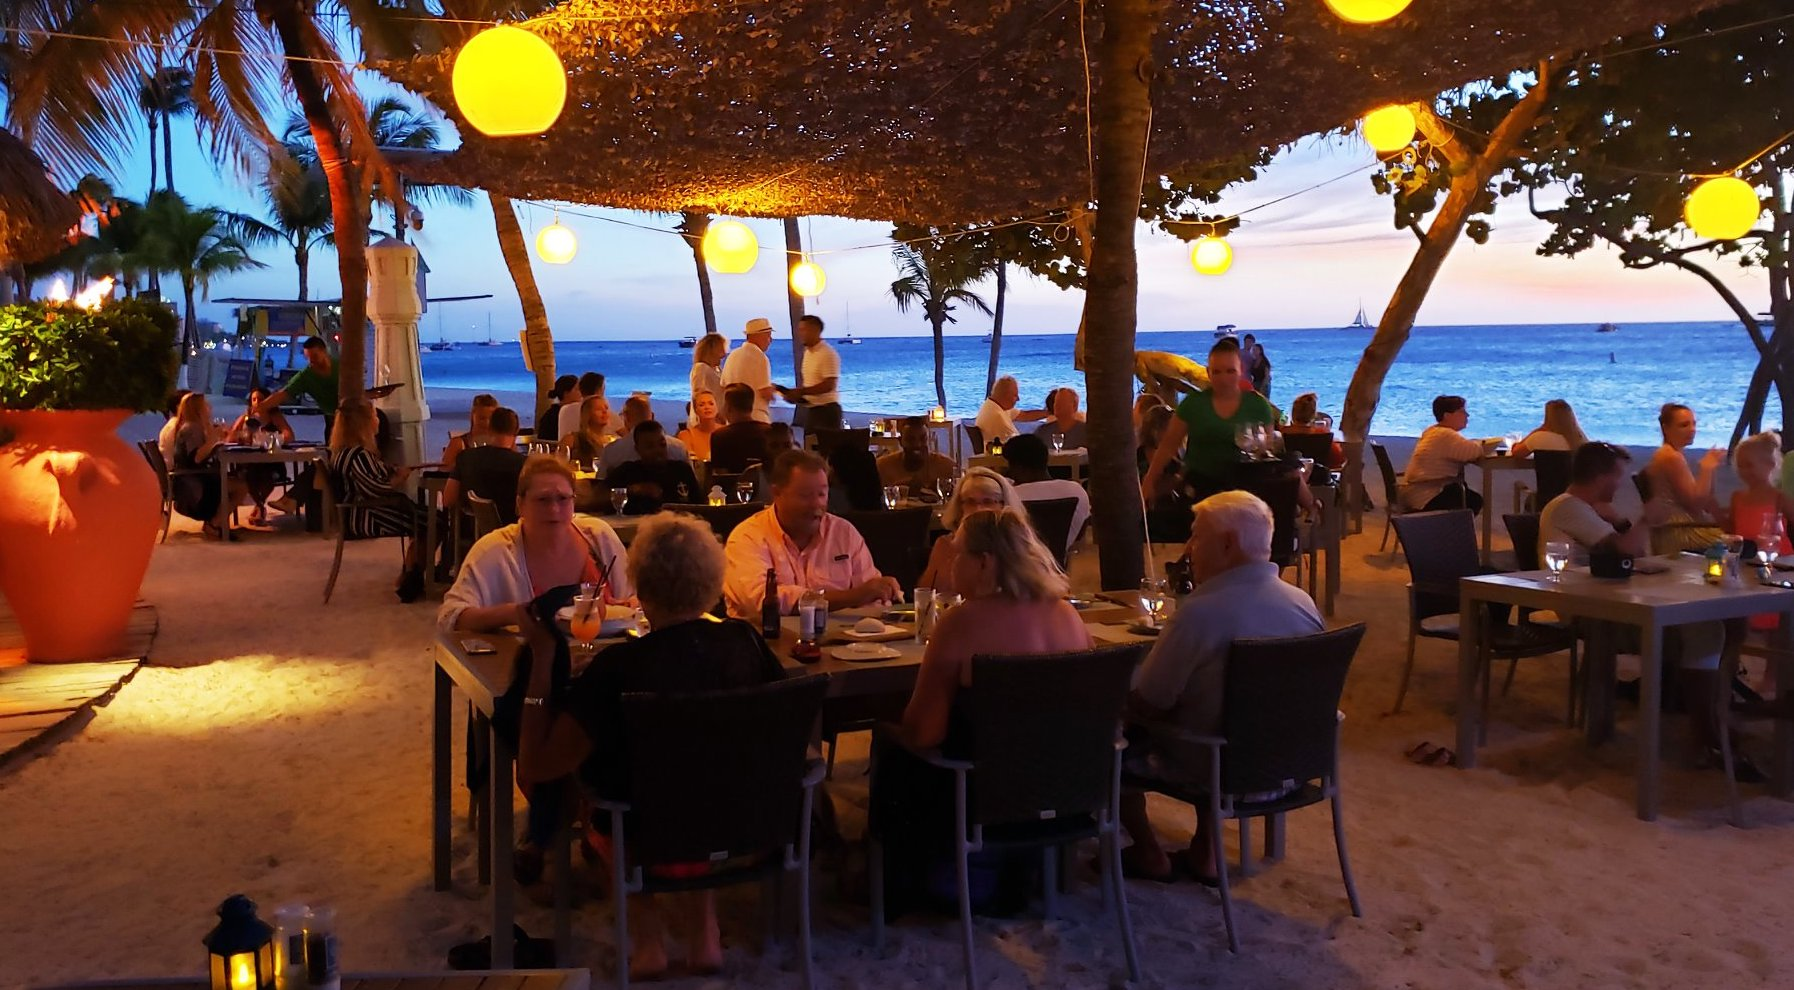 Best Beach Bars in Aruba